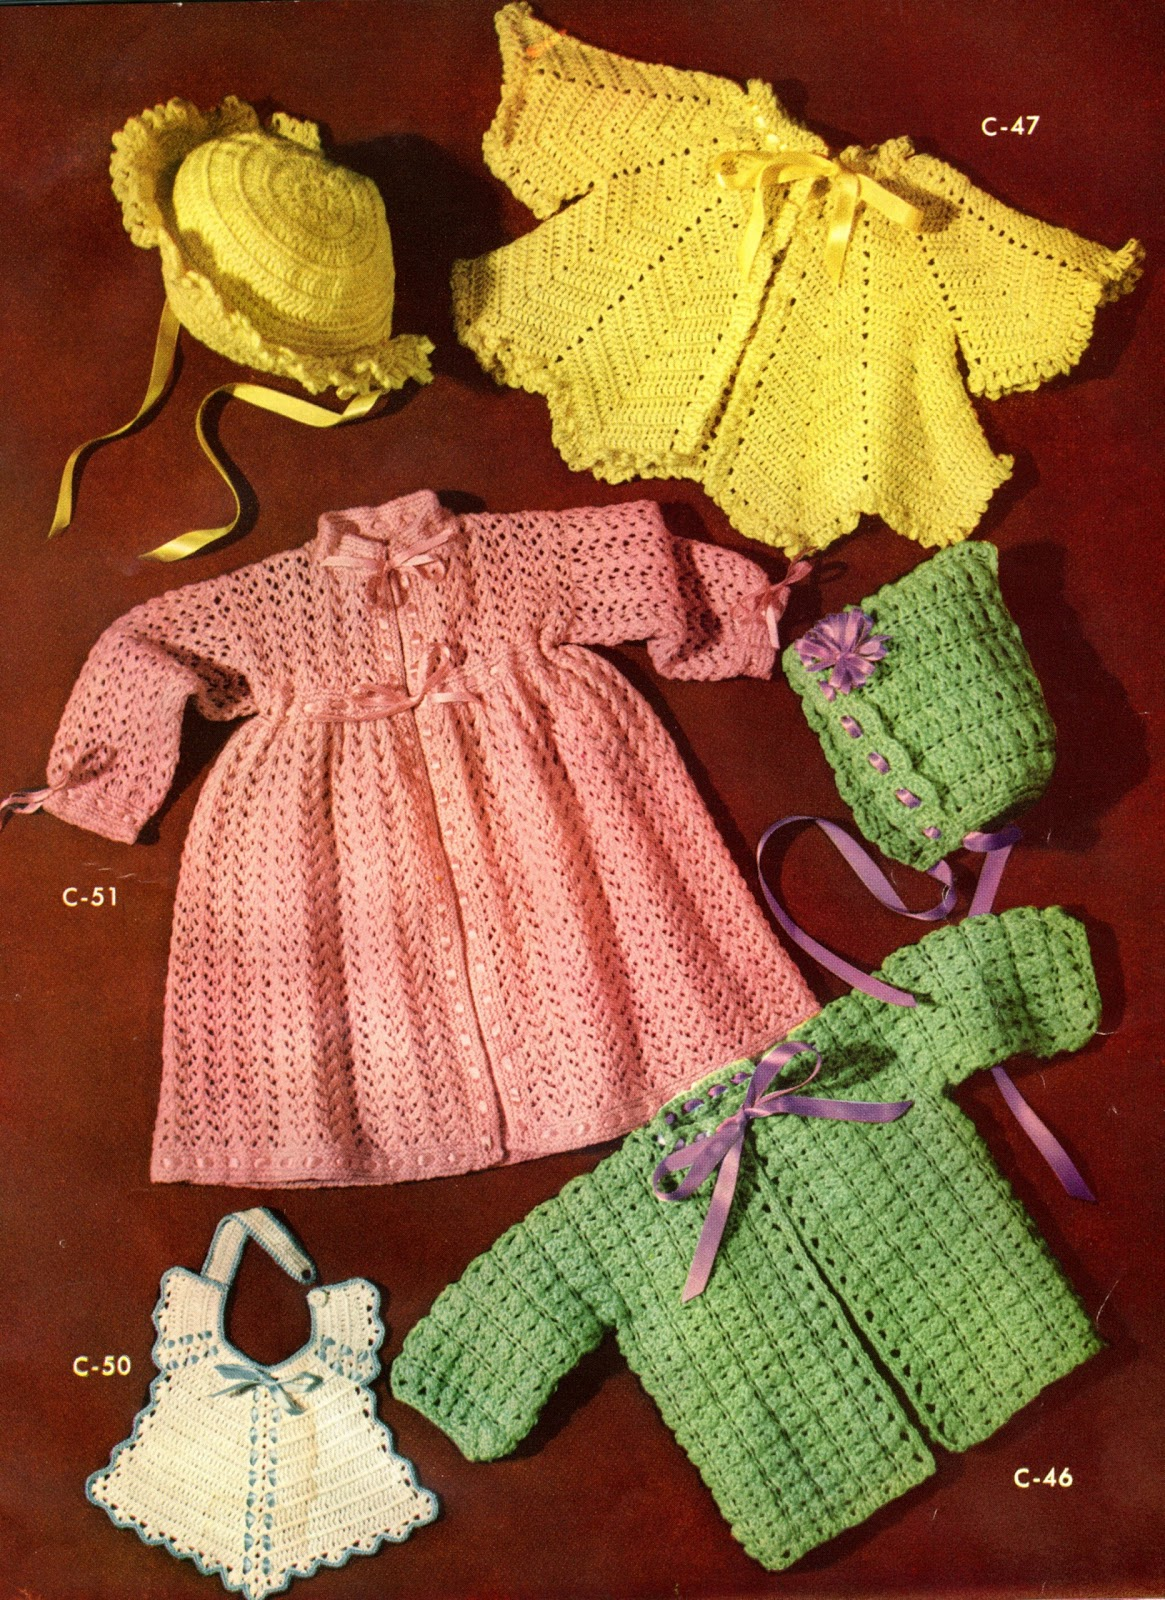 Crochet Stitches Vintage : Donnas Crochet Designs Blog of Free Patterns: Great Vintage Crochet ...